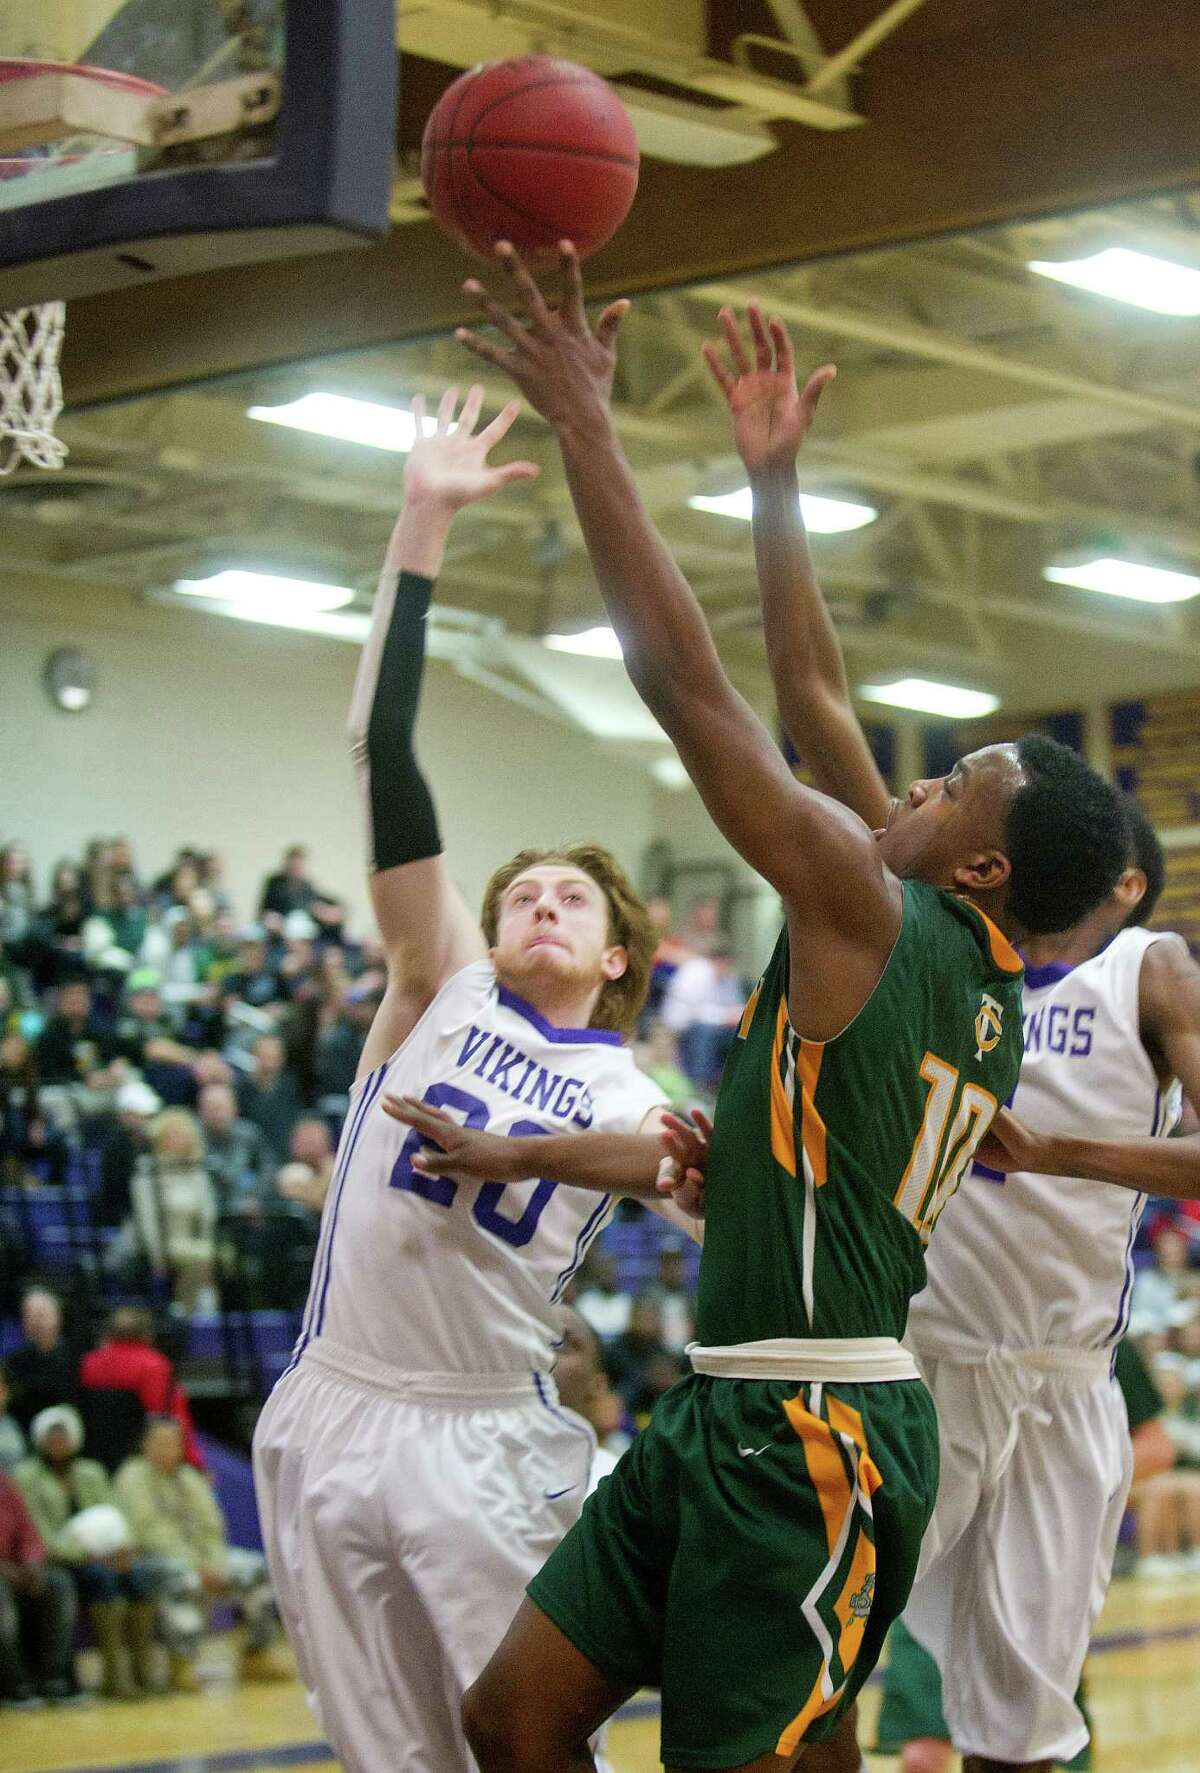 Trinity Catholic's Tyrell St. John takes a shot during Friday's basketball game at Westhill High School on January 30, 2015.